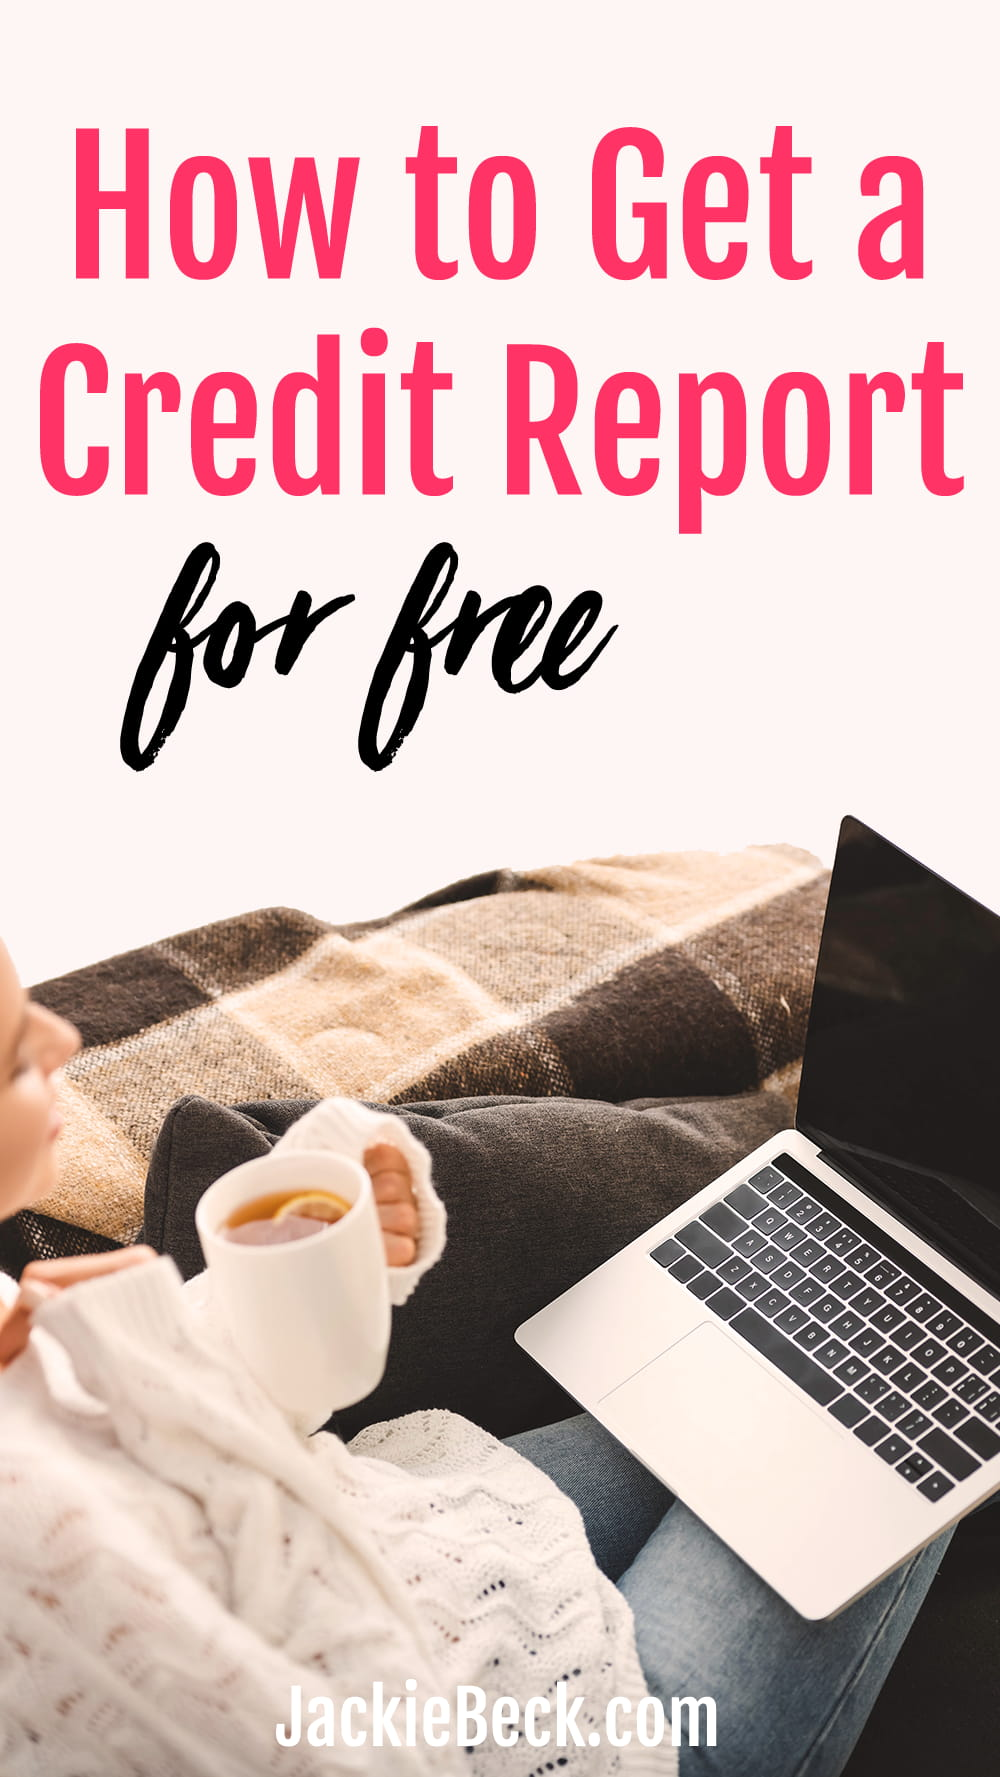 How to get a credit report for free